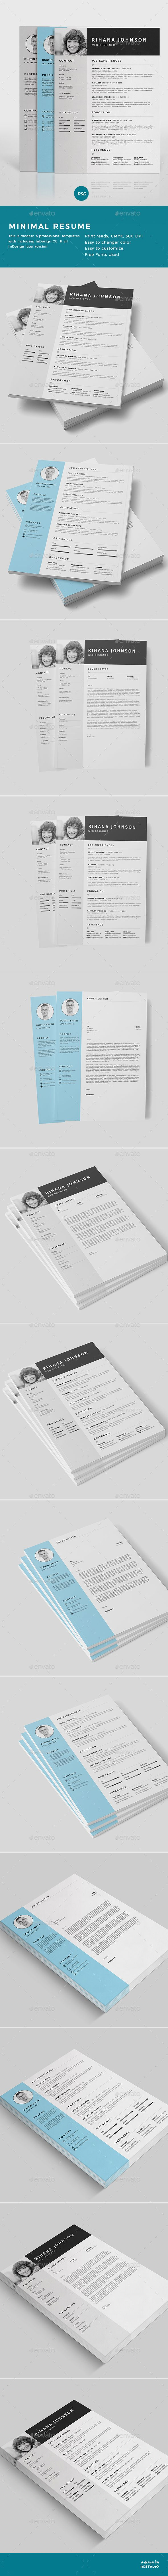 buy resume by rcstudio on graphicriver resume the perfect way to make the best impression strong typographic structure and very easy to use and customise - Buy Resume Templates